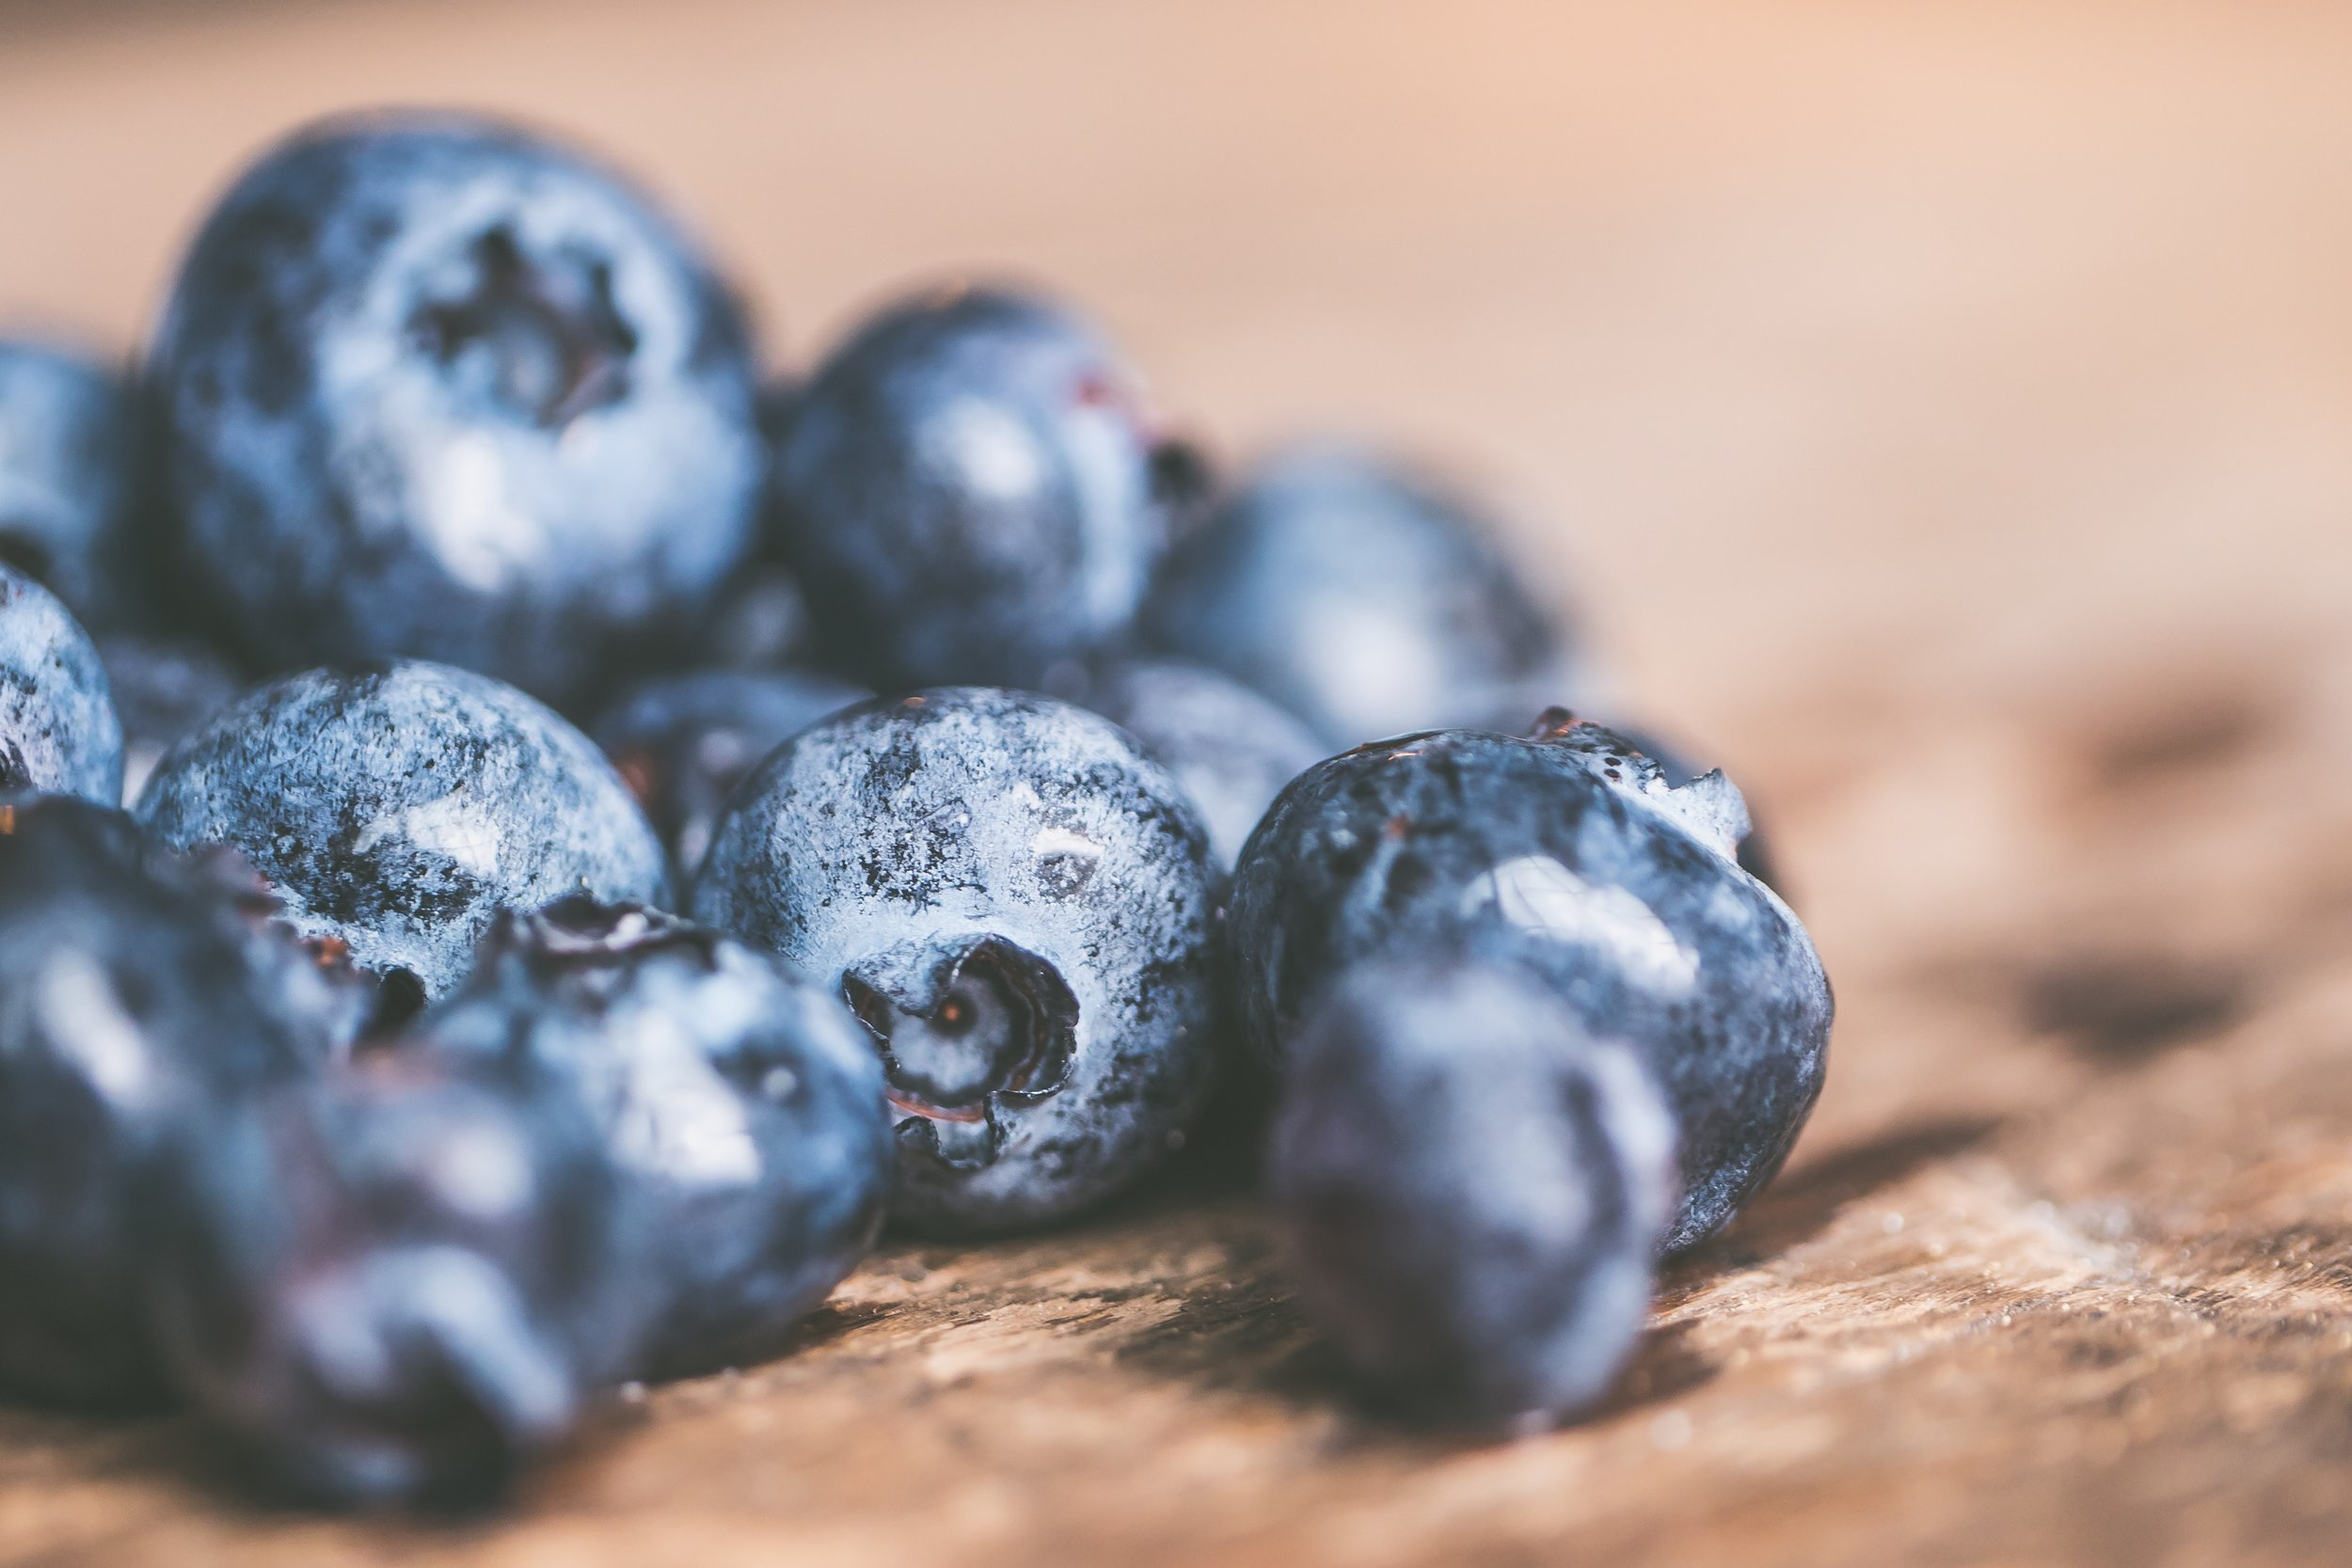 berry-blueberries-blueberry-583837.jpg